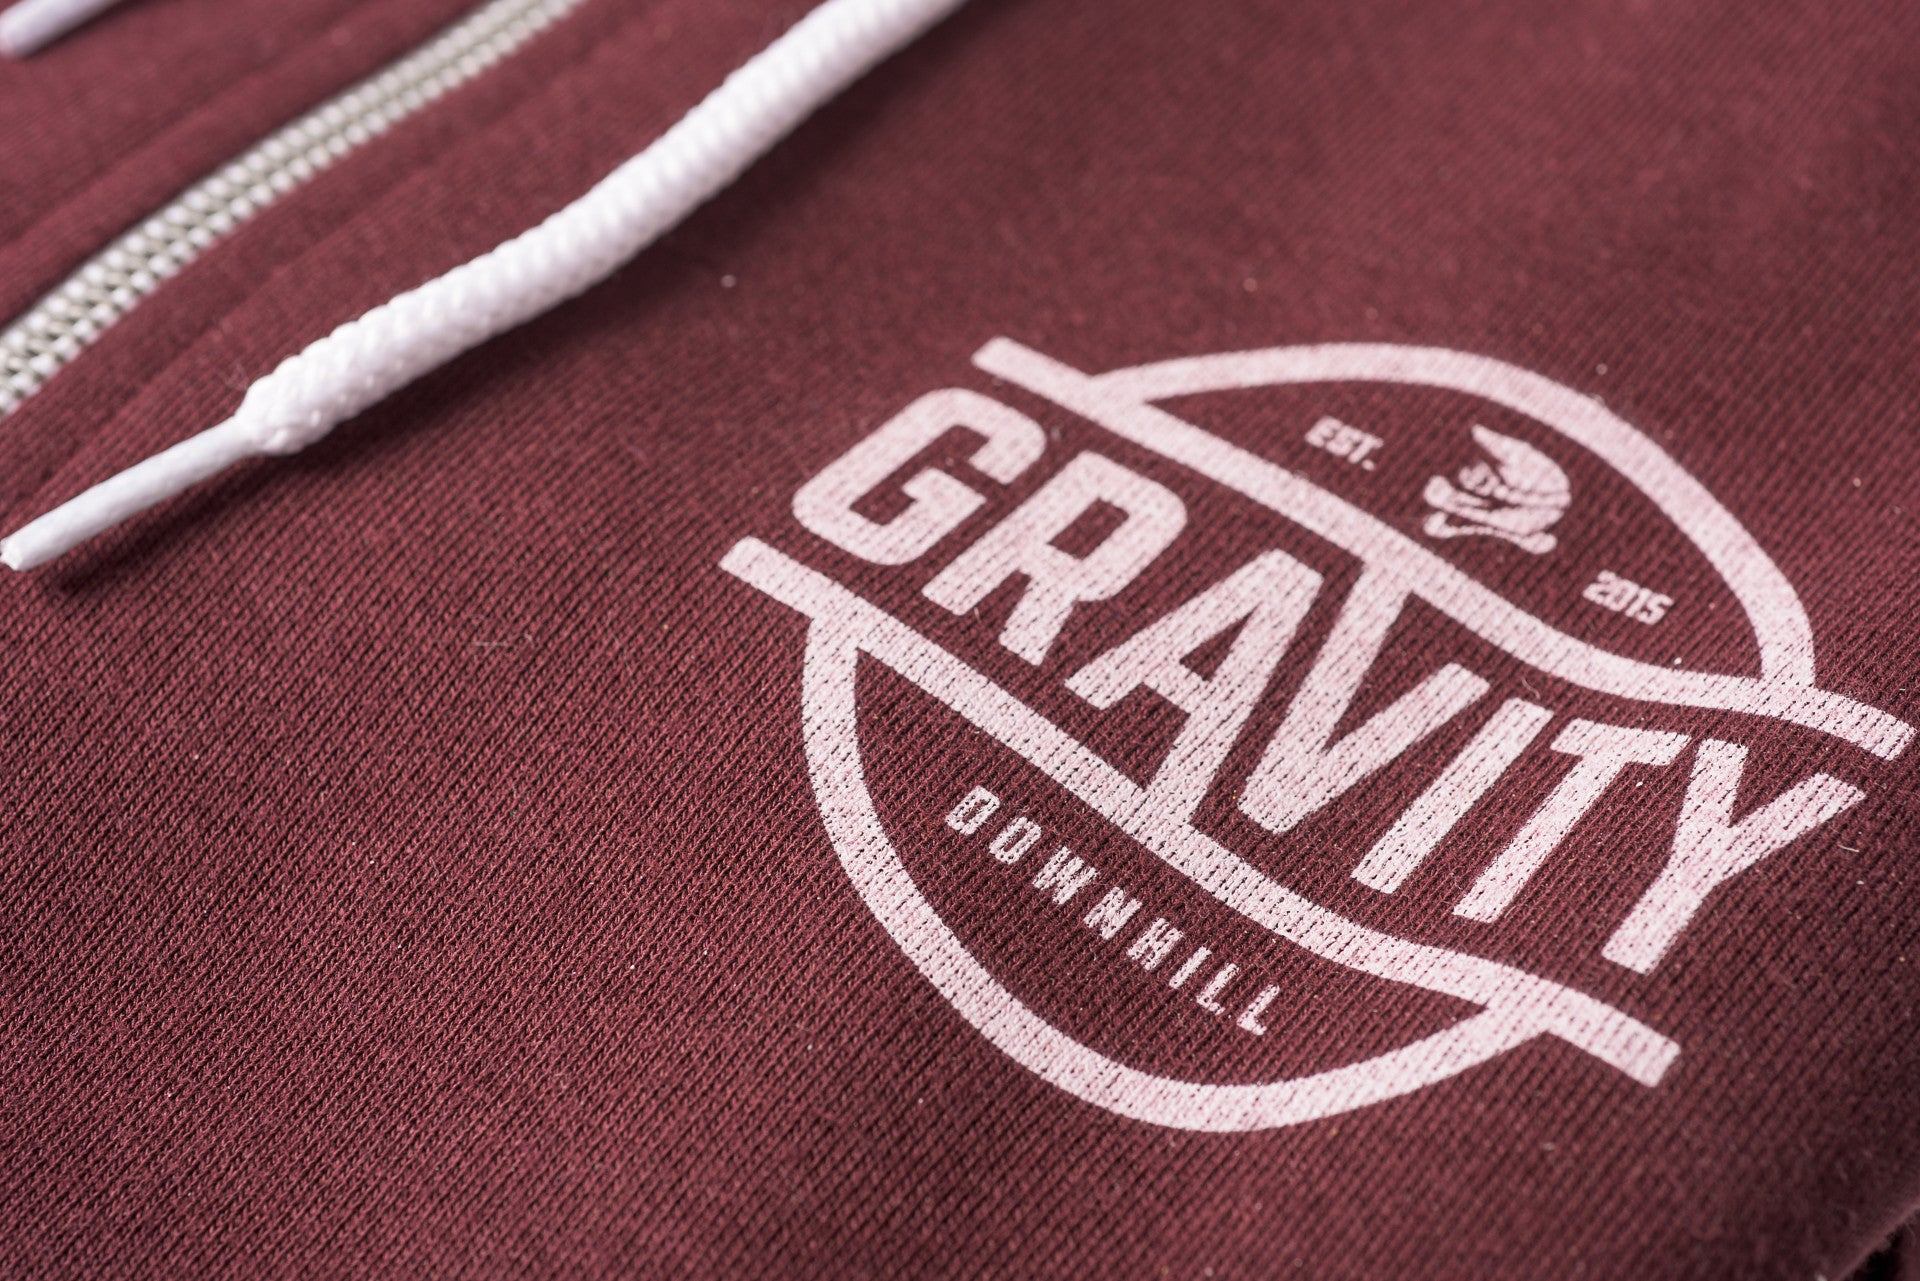 Fashion Meets Function with the New Gravity Hoodie